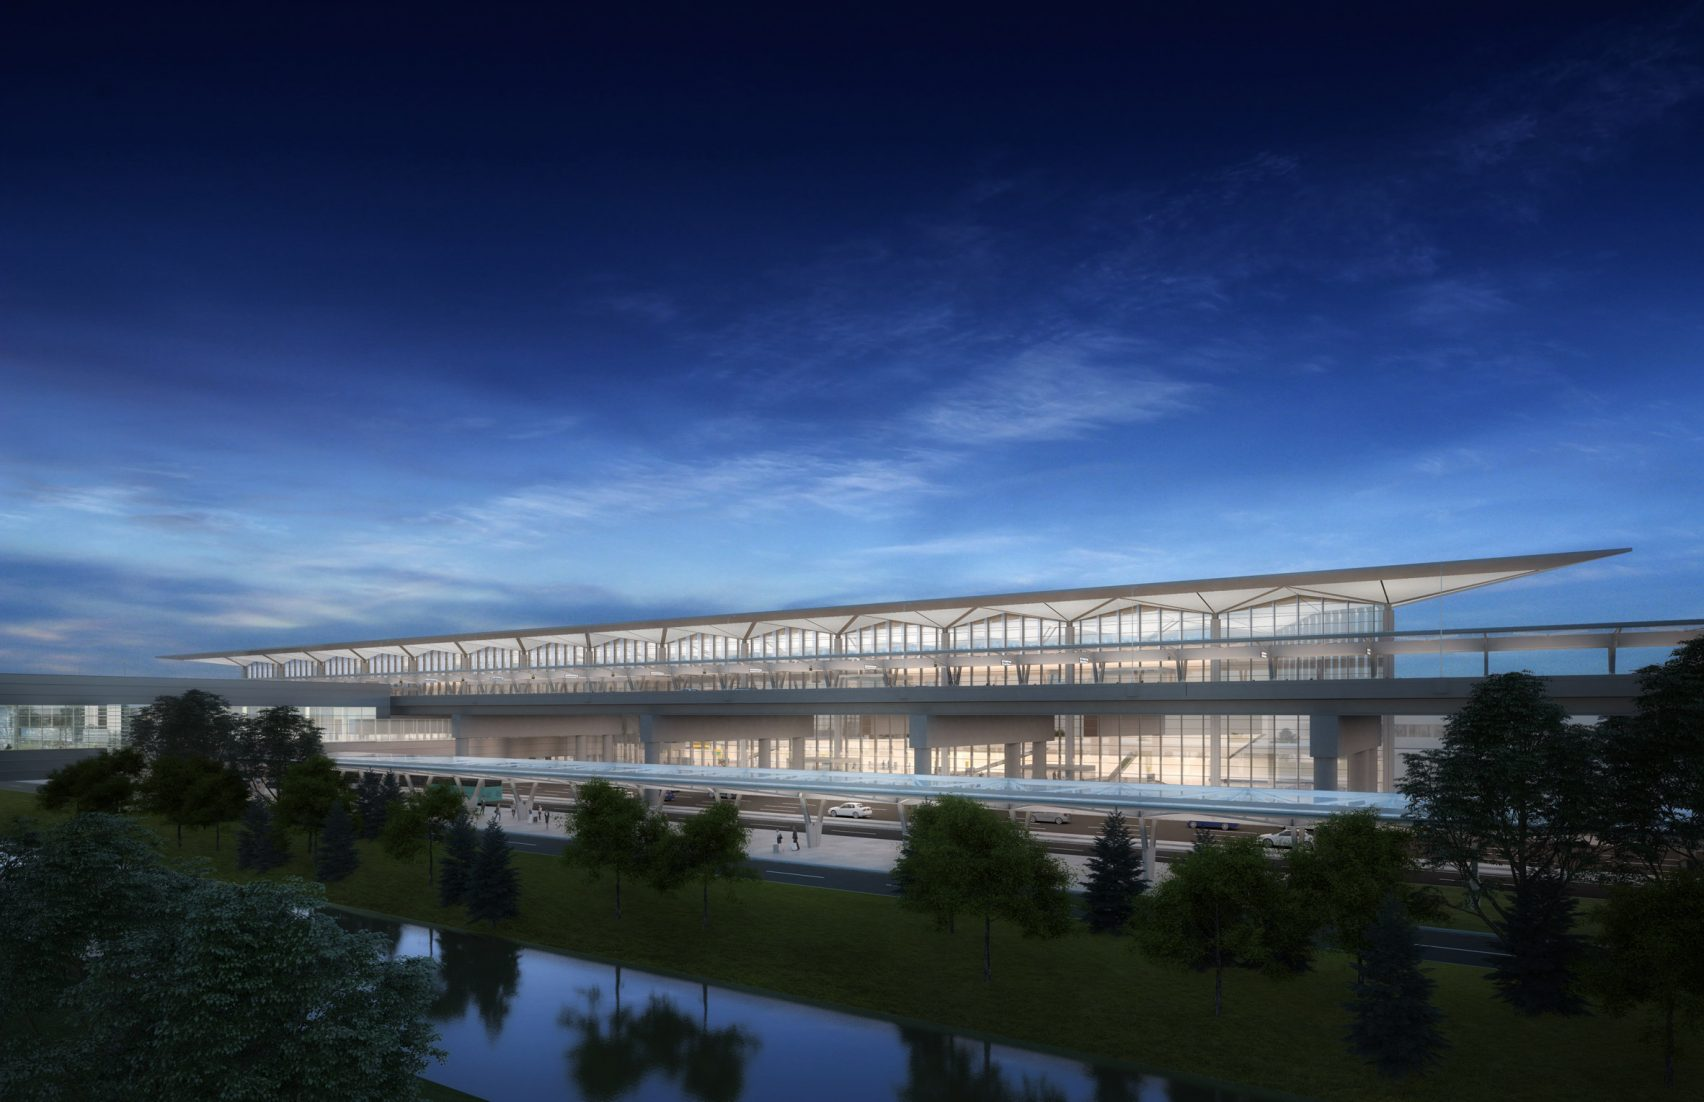 newark airport, newark liberty airport, terminal one, grimshaw architects, newark airport renovation